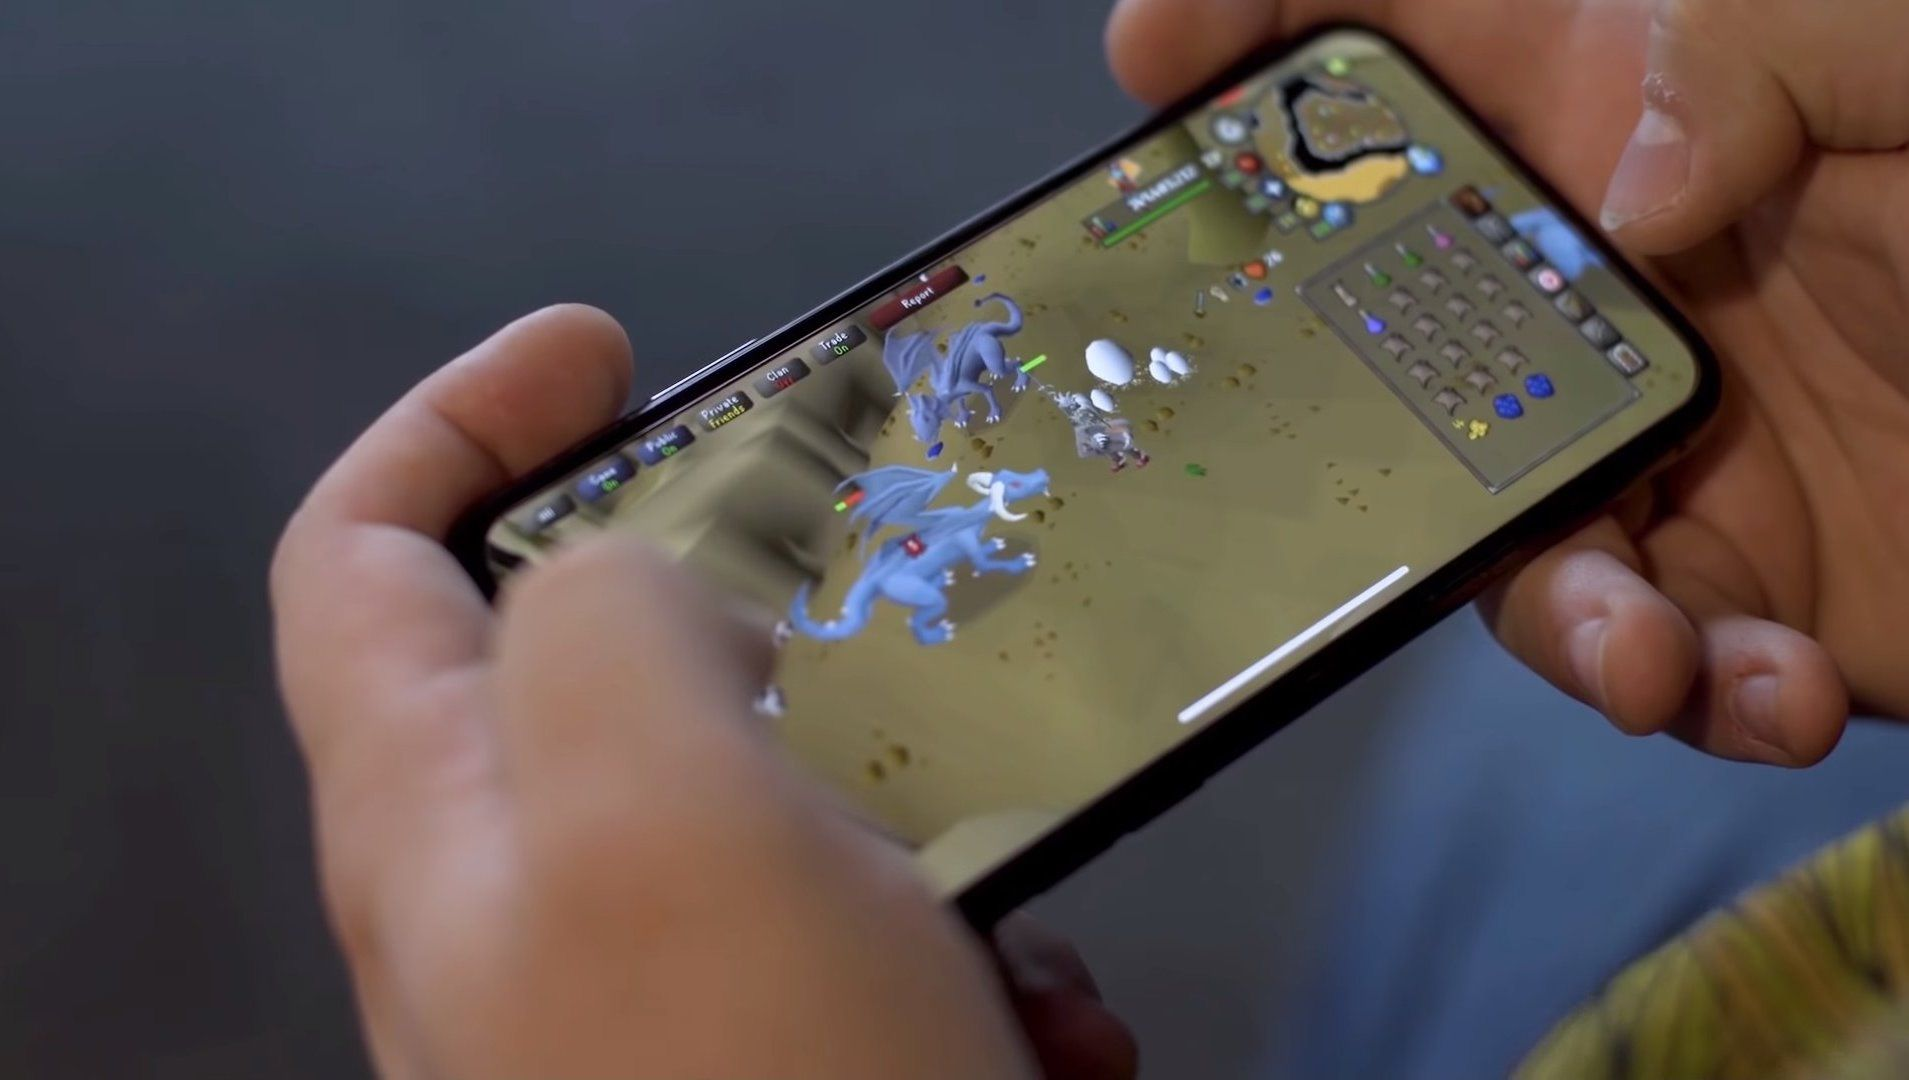 Old School RuneScape Launches on iOS and Android Devices - Runescape News